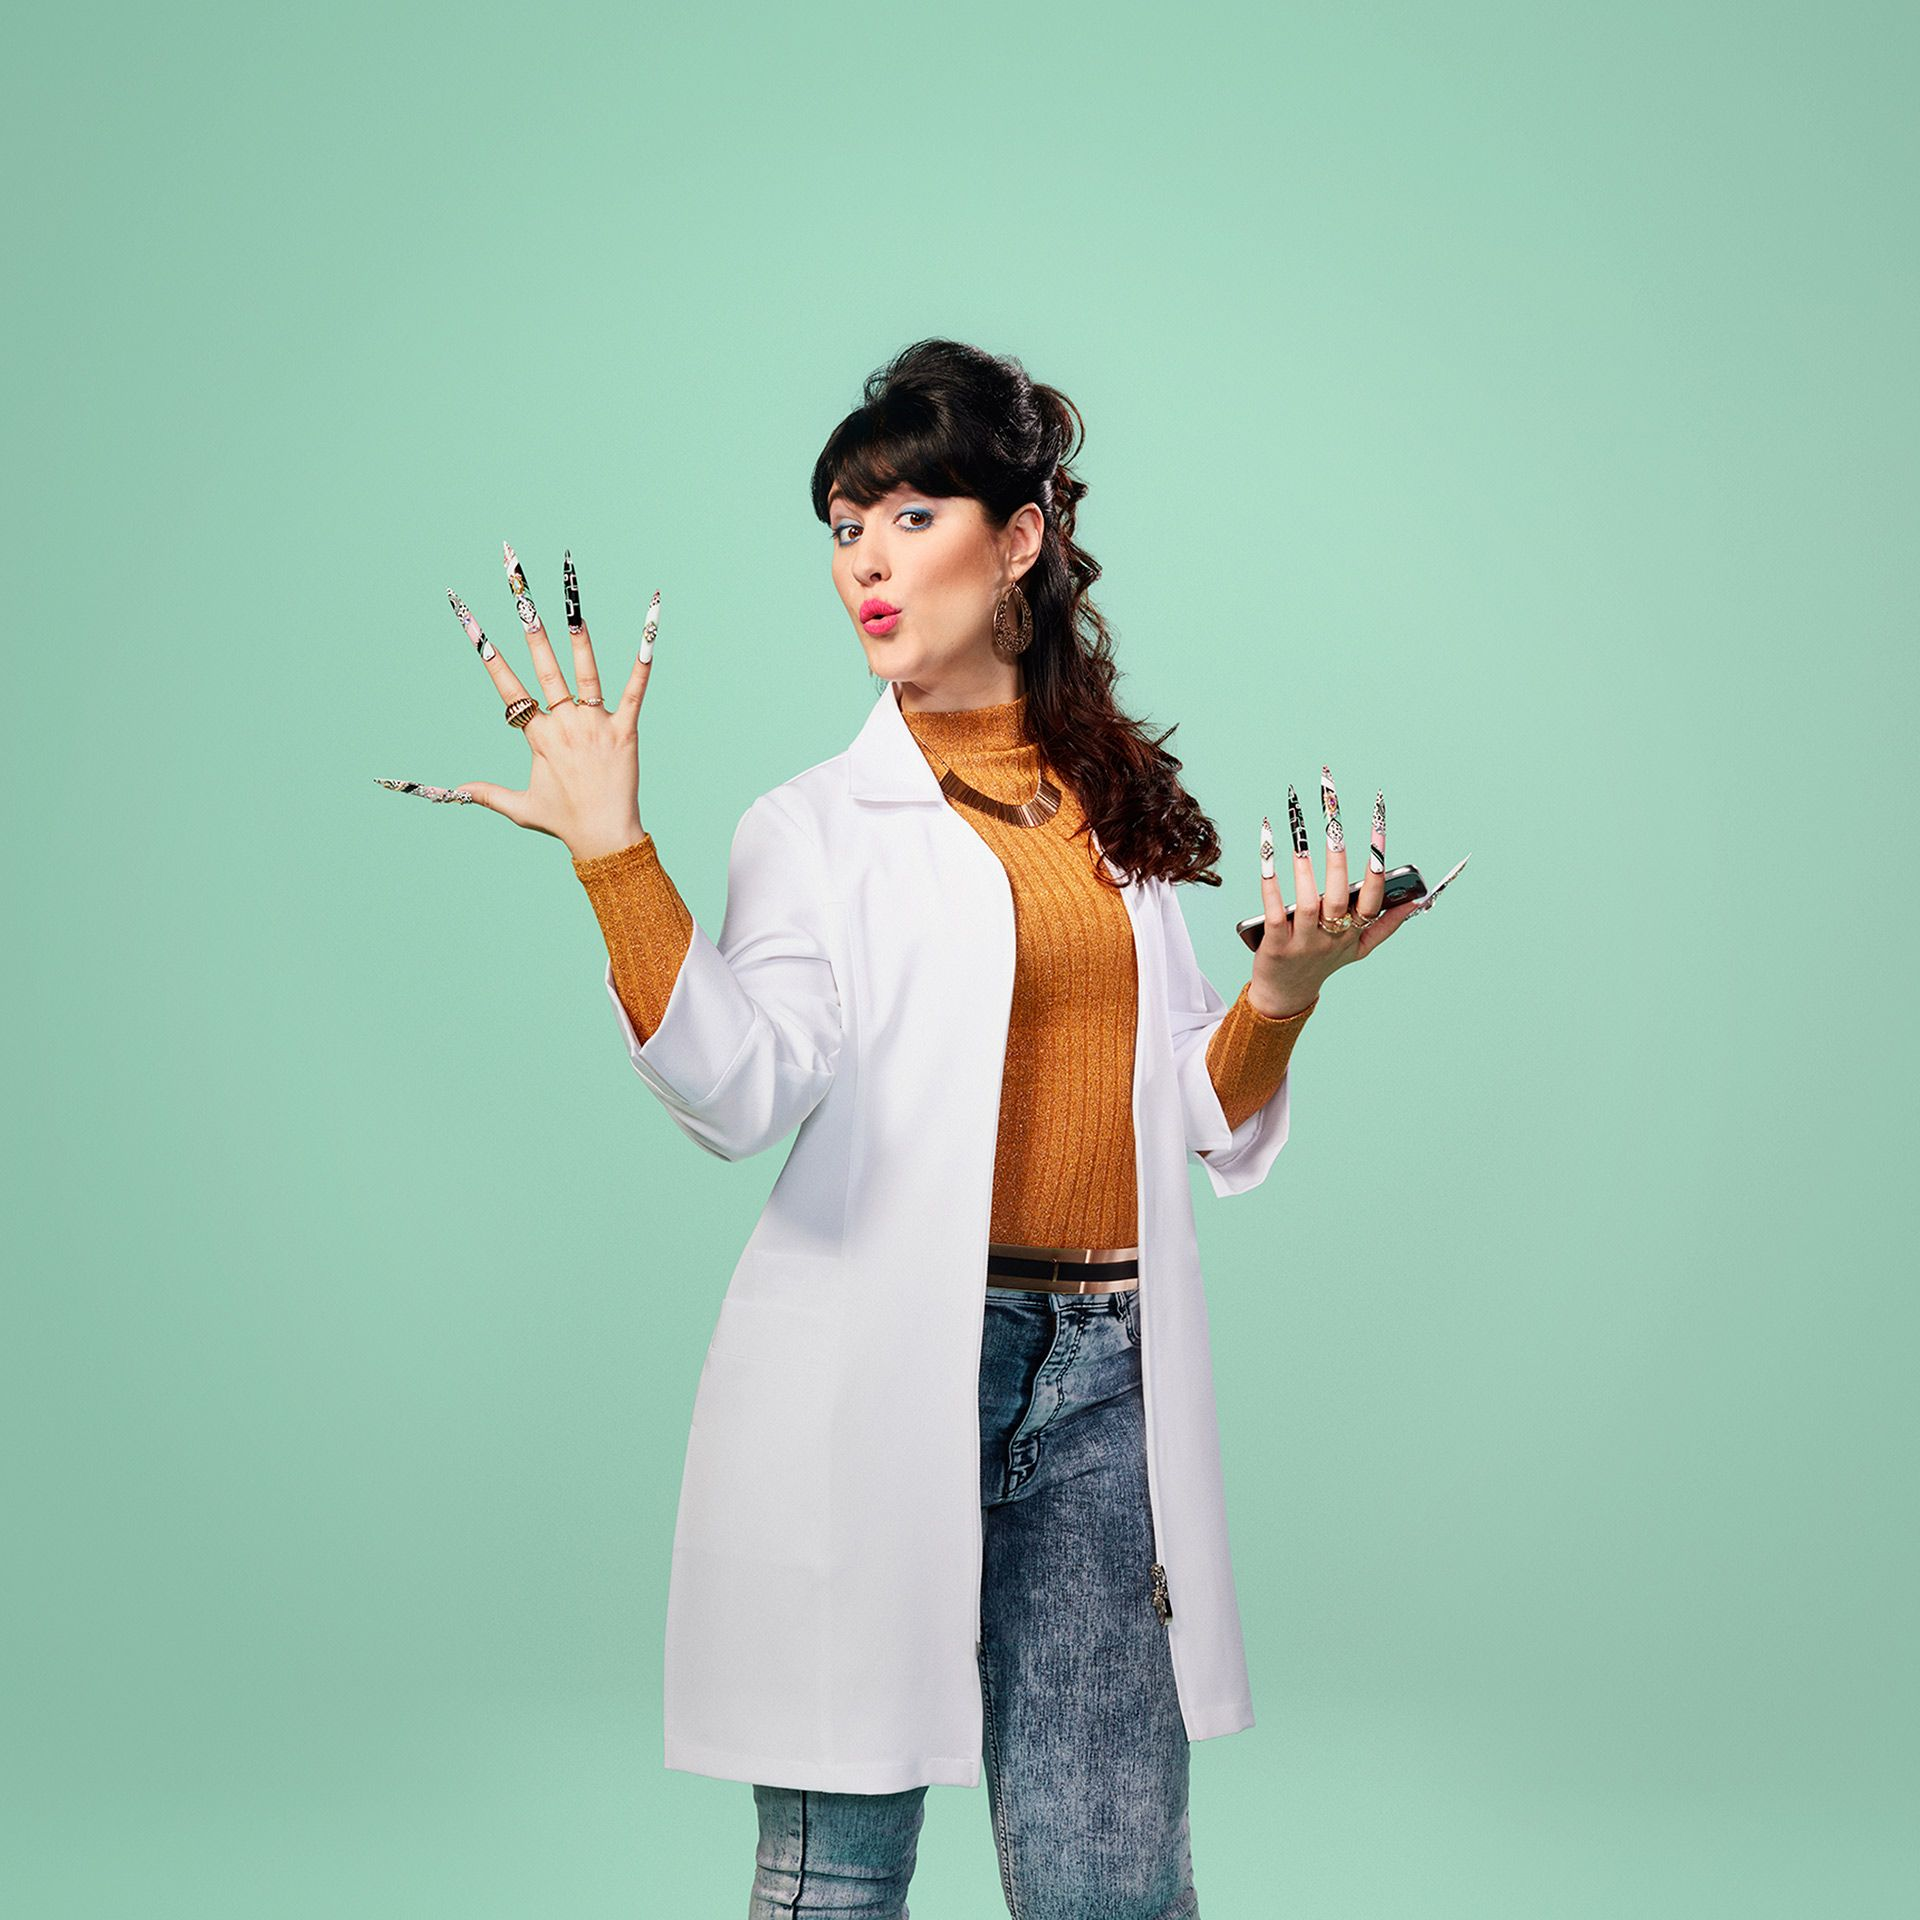 lady dressed as nail technician with extra long nails holding phone looking happy by Jocelyn Michel for Desjardins Assurance with Lg2